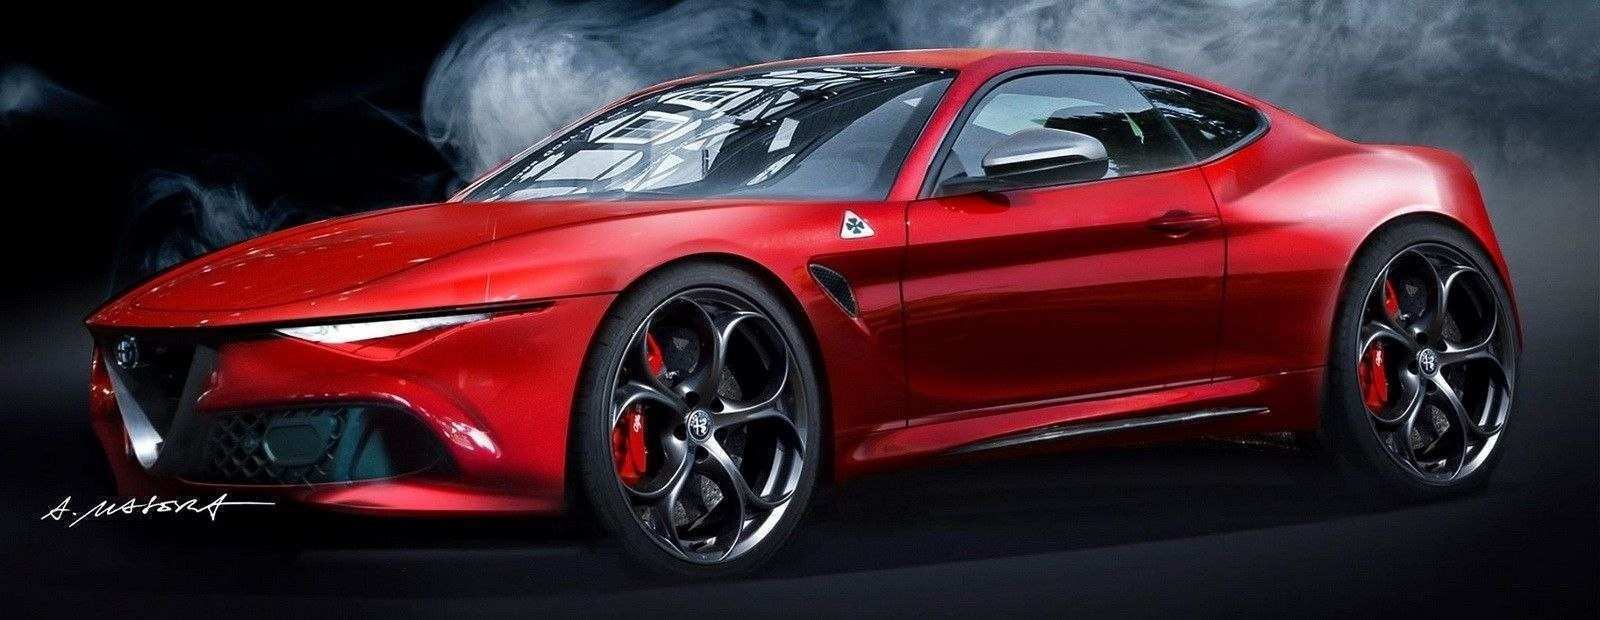 83 A 2020 Alfa Romeo Duetto Price Design And Review